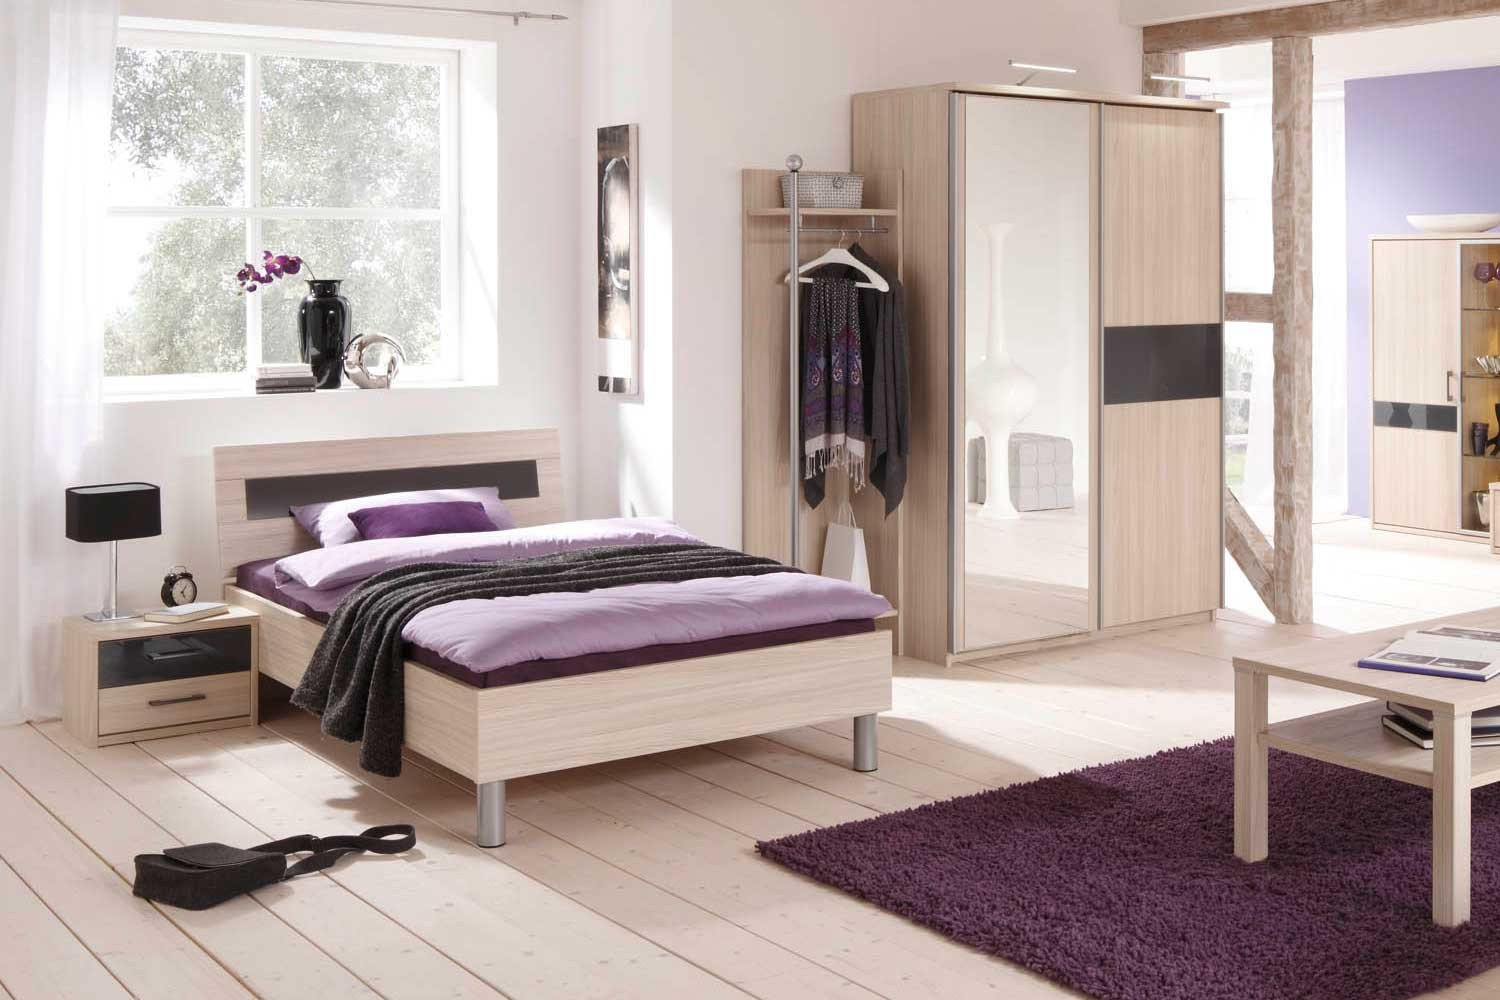 priess riva jugendzimmer akazie anthrazit m bel letz. Black Bedroom Furniture Sets. Home Design Ideas